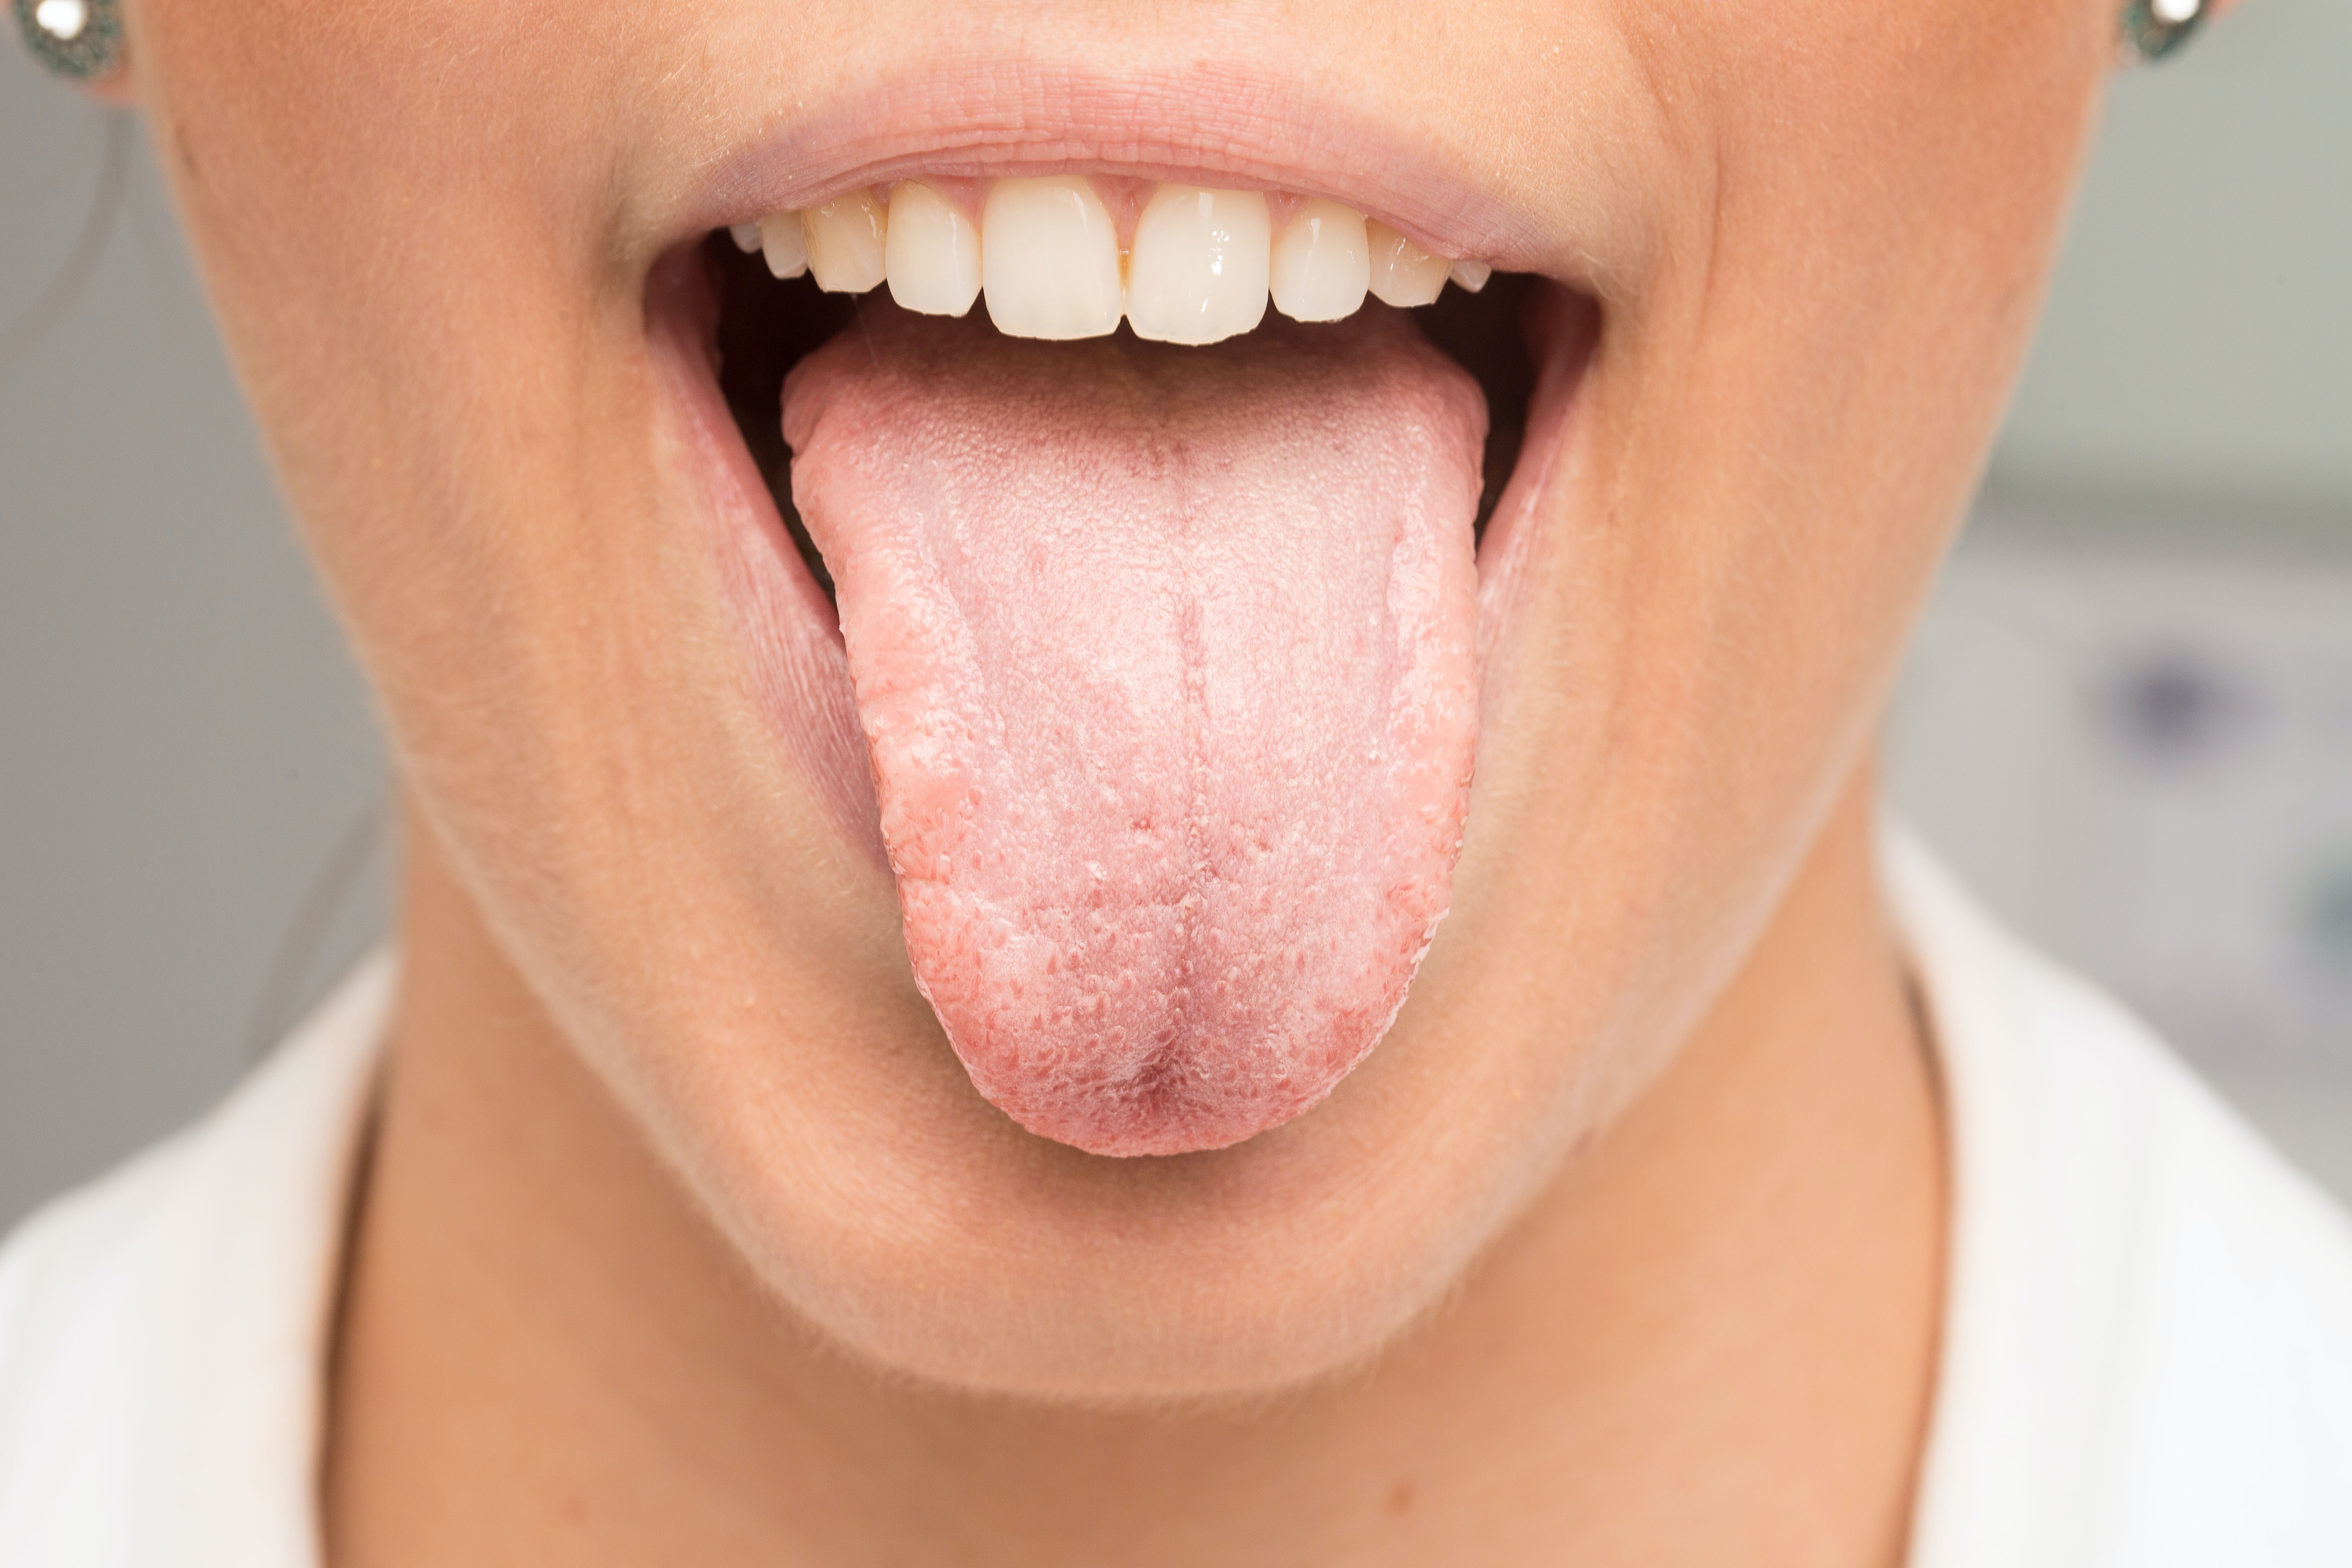 An image depicting a person suffering from tongue pain symptoms